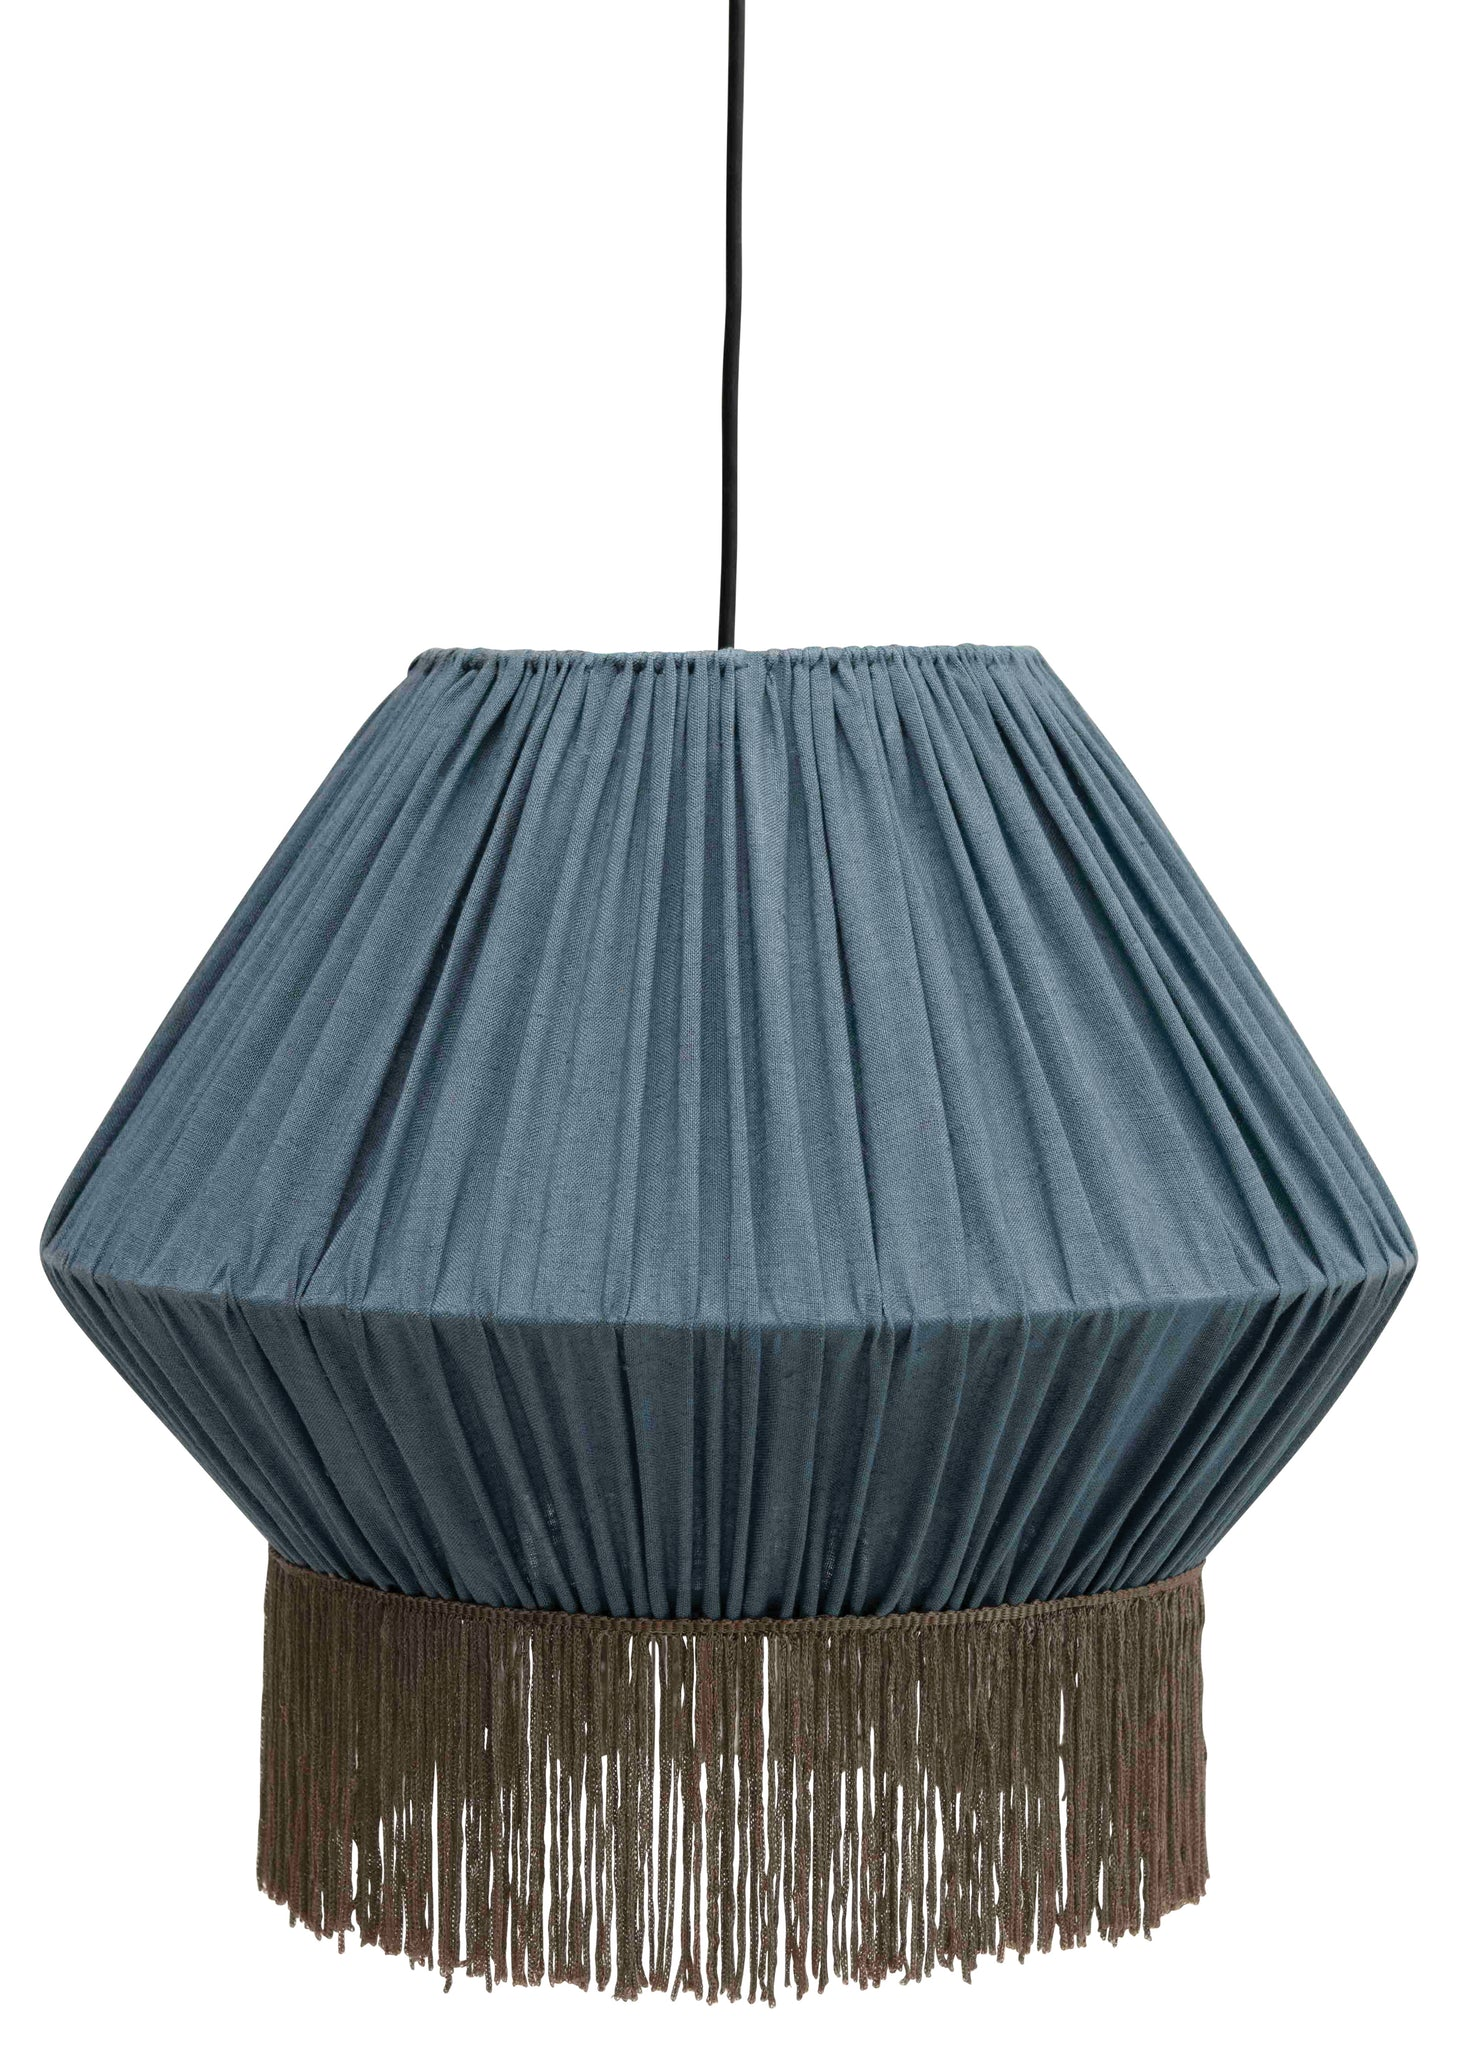 "17.5"" Round Gathered Cotton Pendant Light with Fringe & 6' Cord (Hardwire Only)"